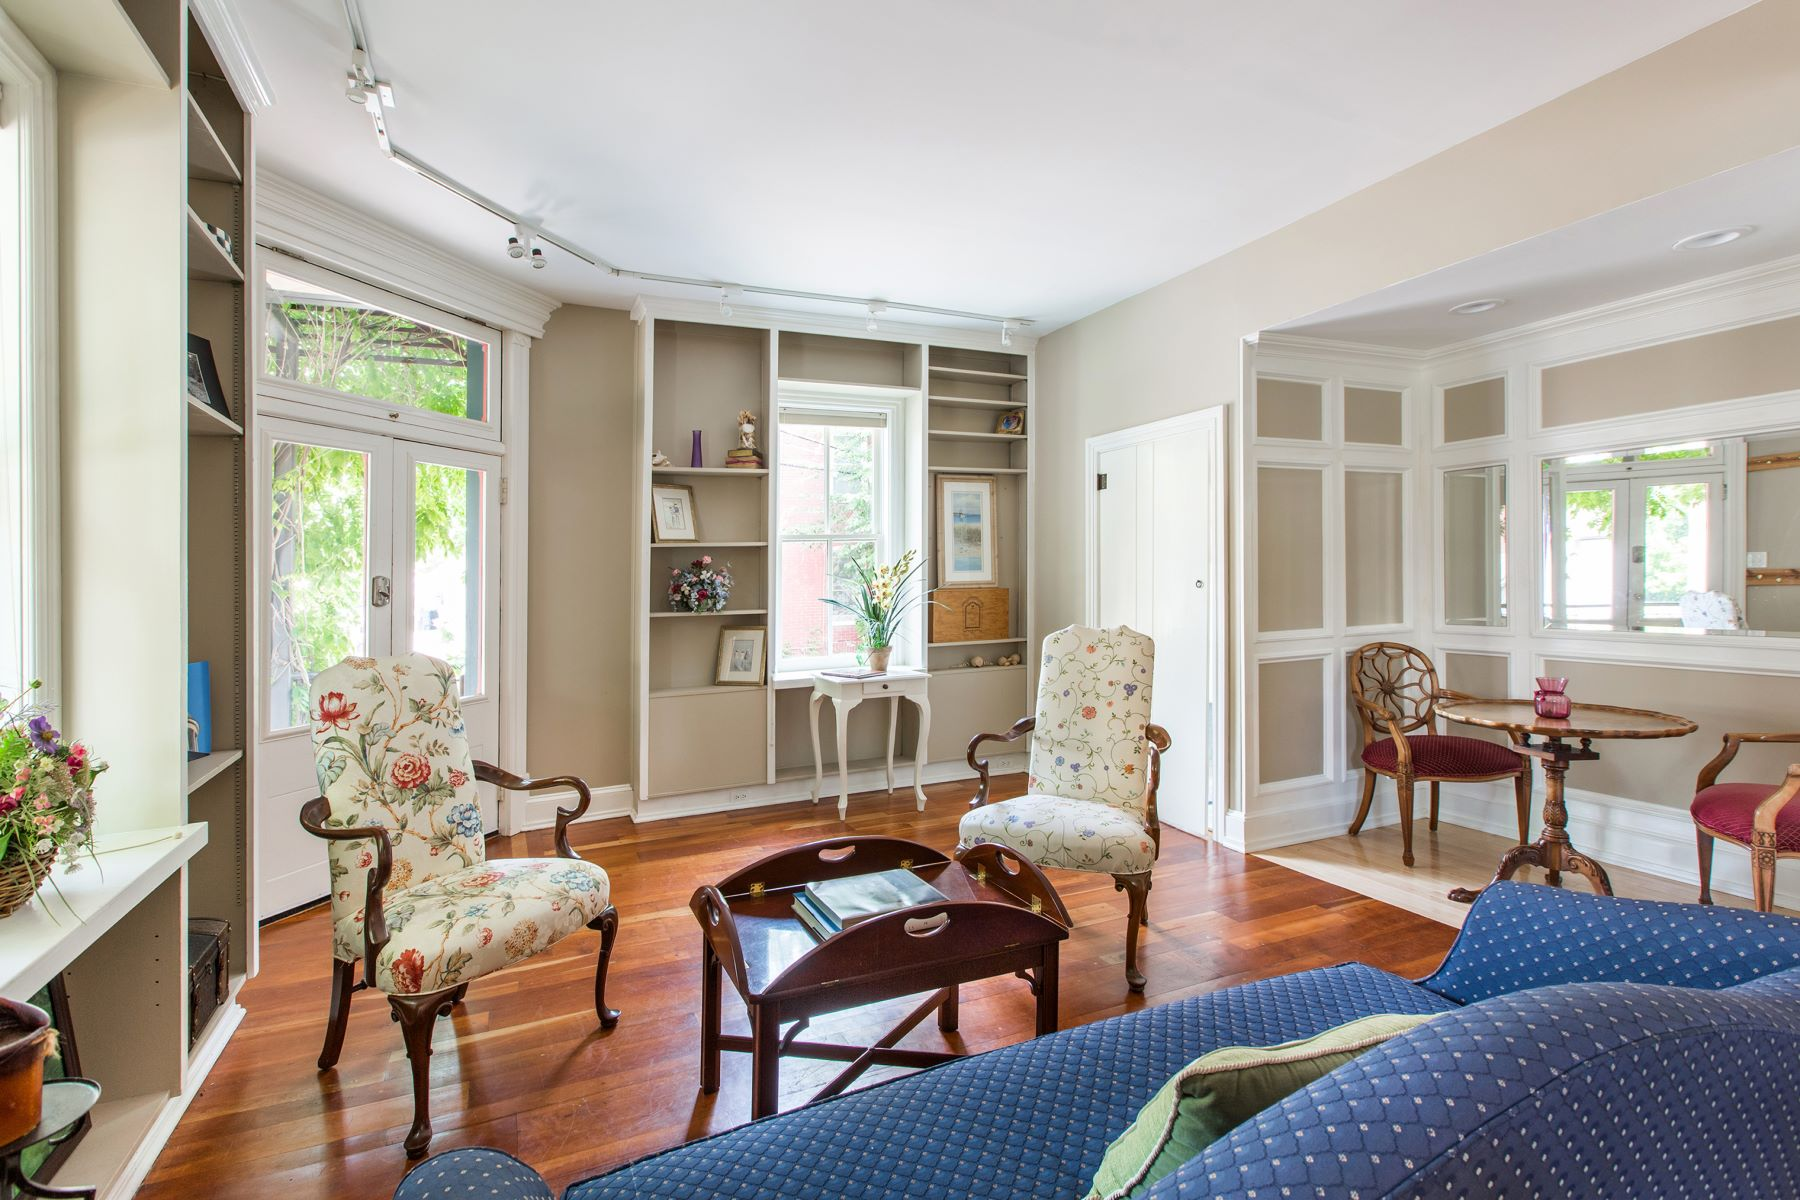 Additional photo for property listing at 15 Swan St  Lambertville, New Jersey 08530 United States